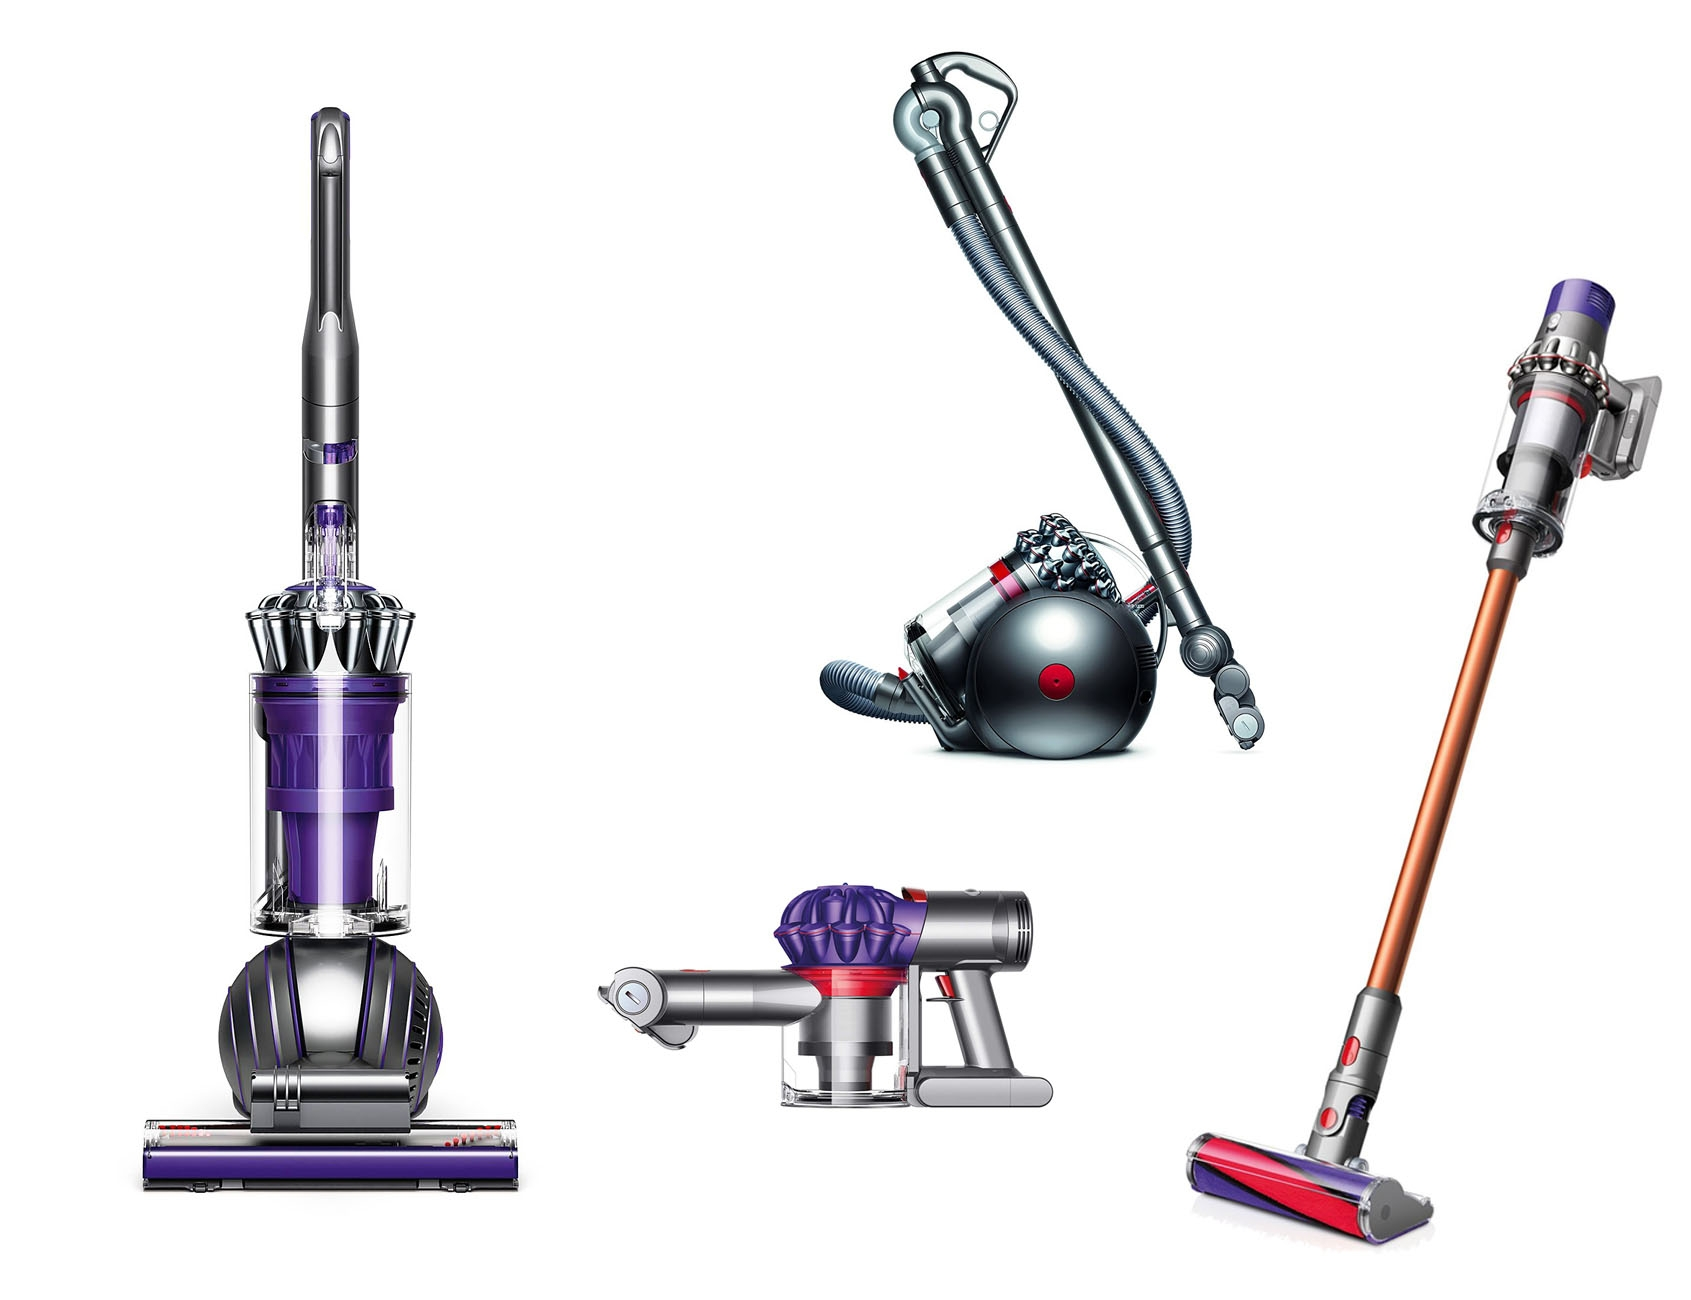 Dyson vacuums review характеристика фена дайсон